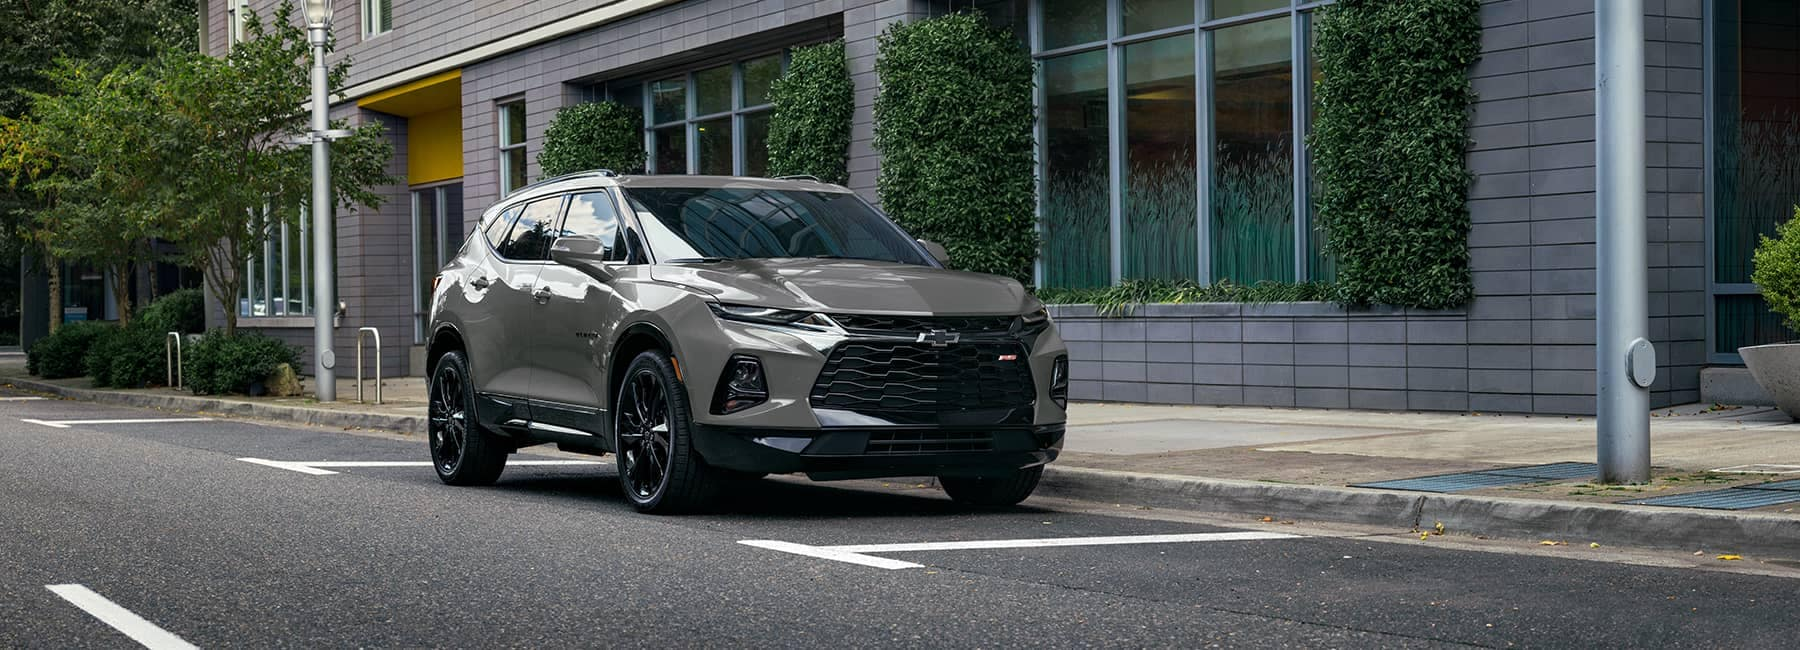 2021 Chevrolet Blazer parked in front of a city building_mobile